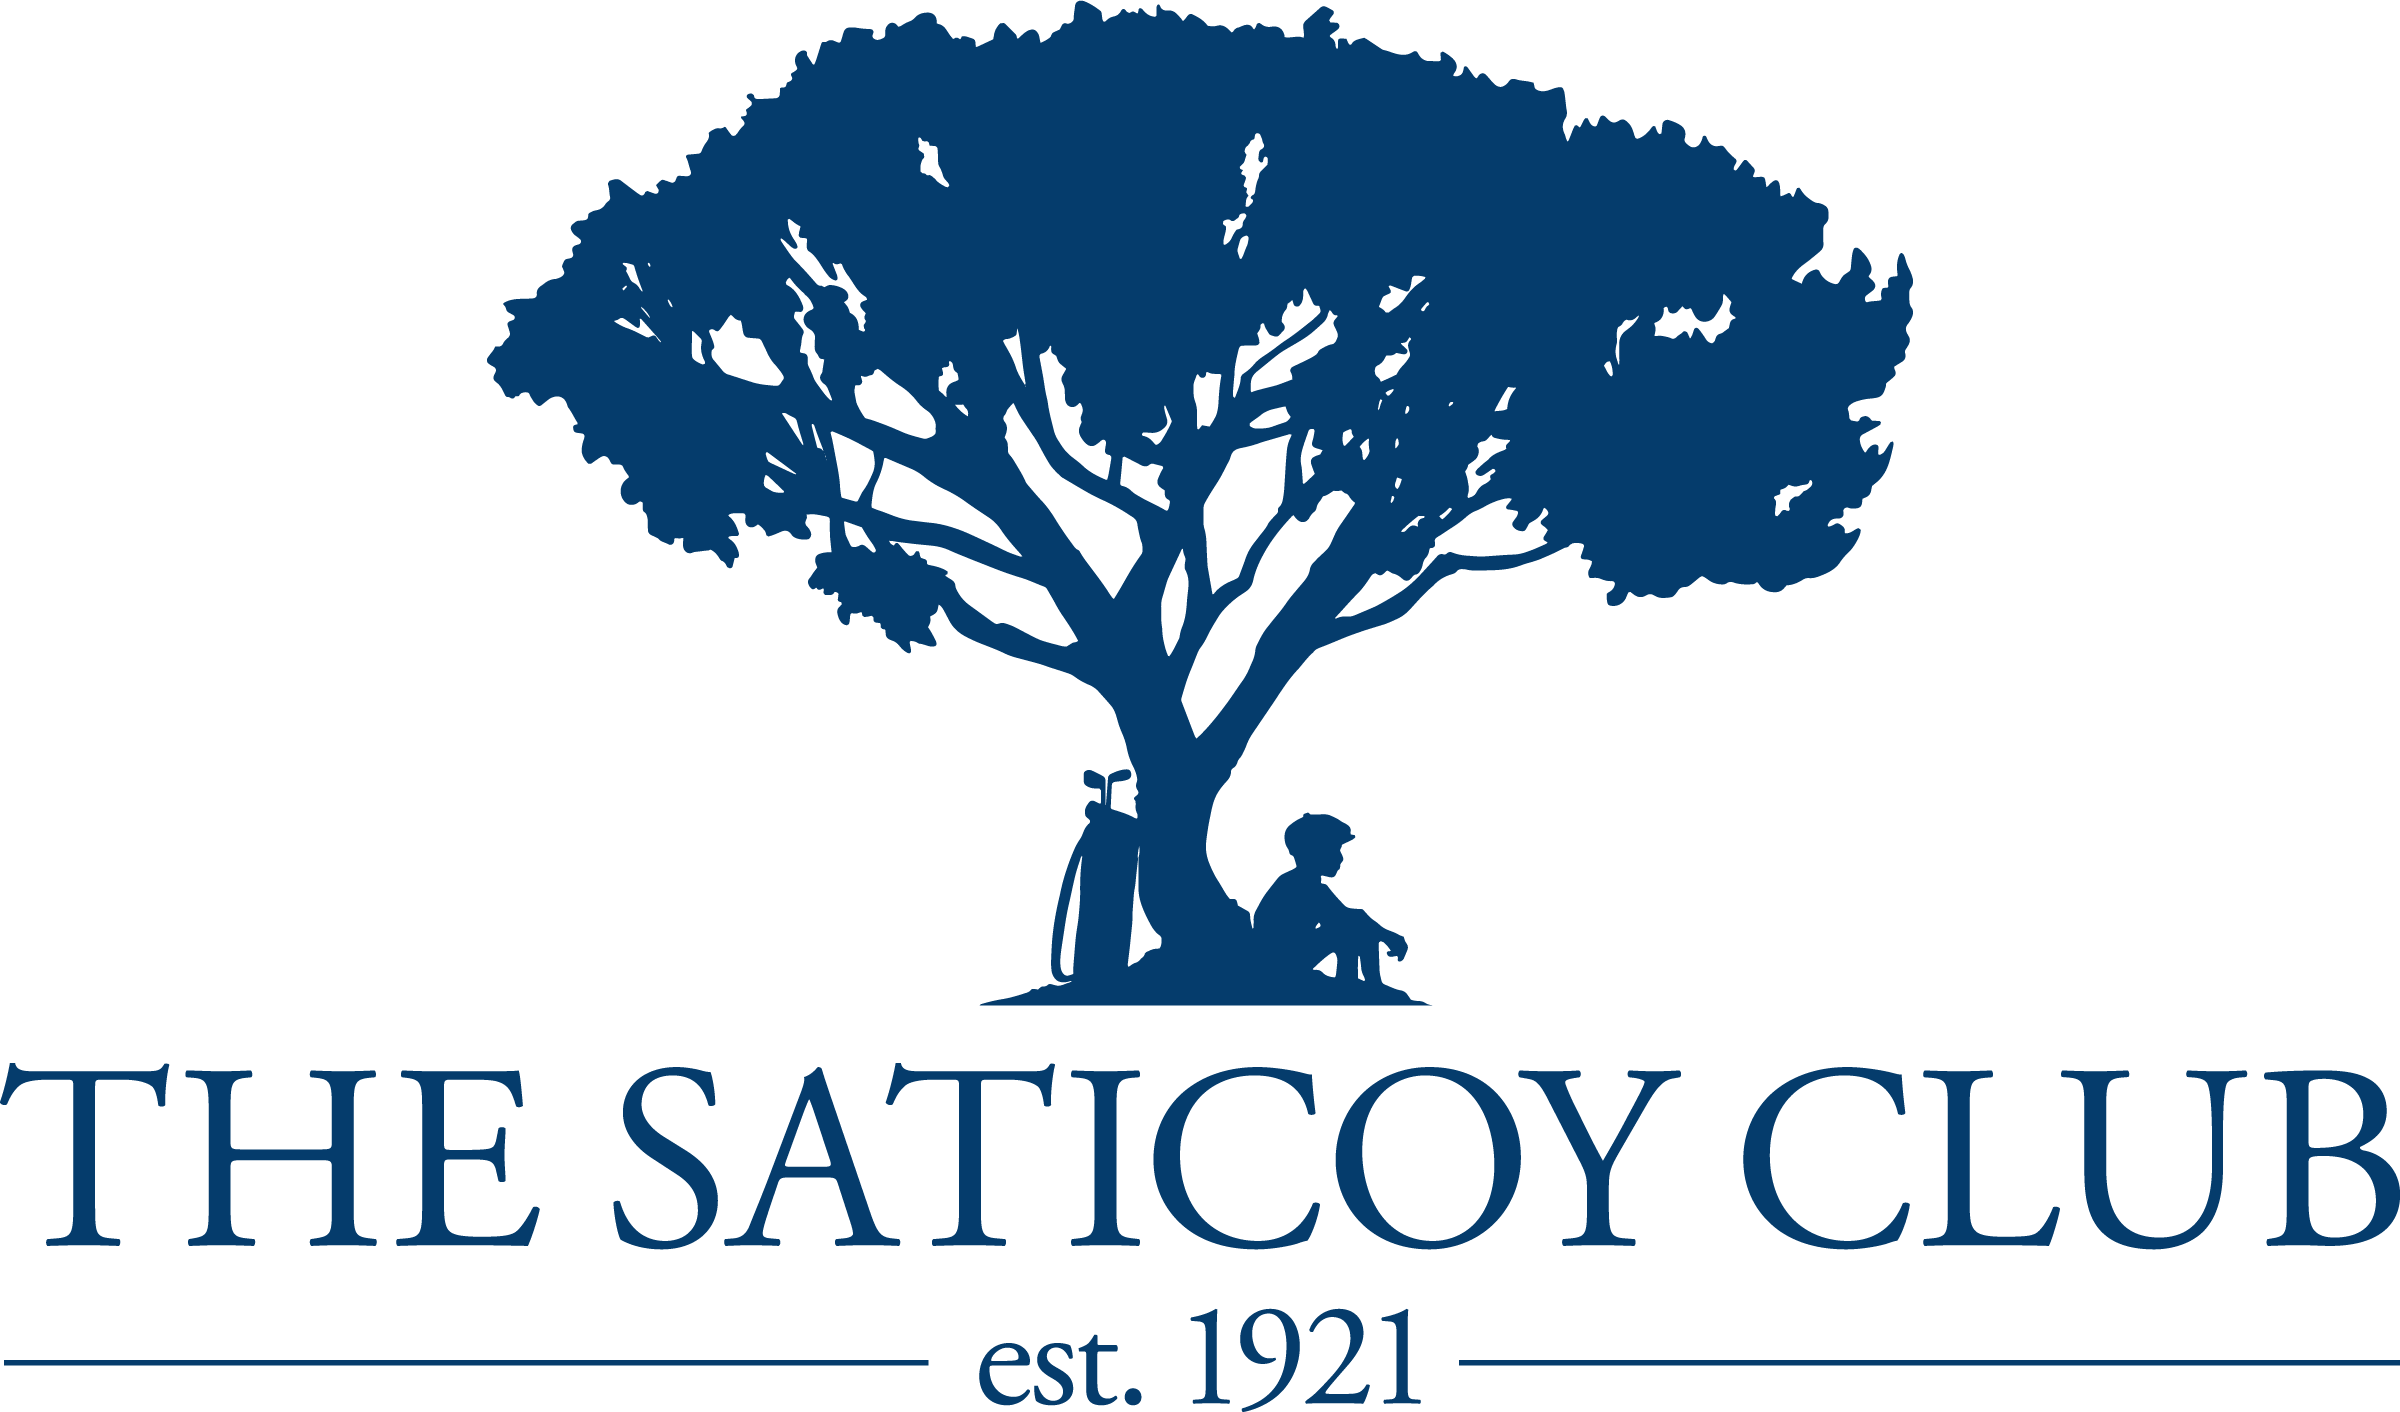 The Saticoy club